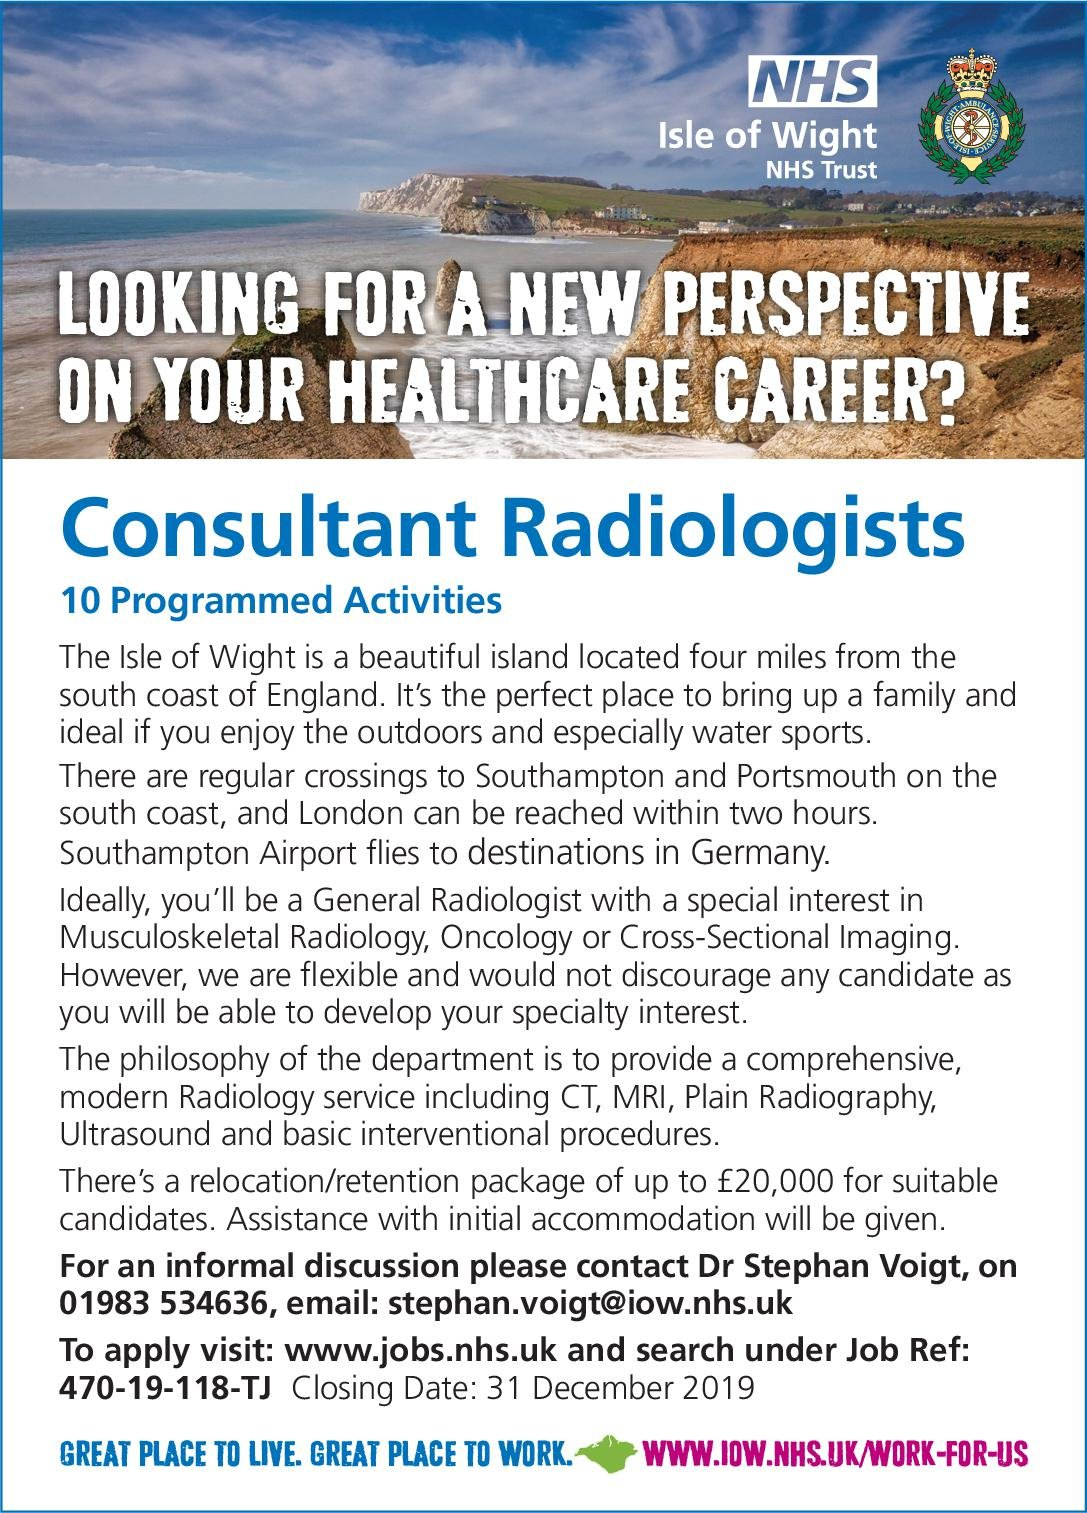 NHS Isle of Wight Consultant Radiologists  Radiologie, Radiologie Arzt / Facharzt